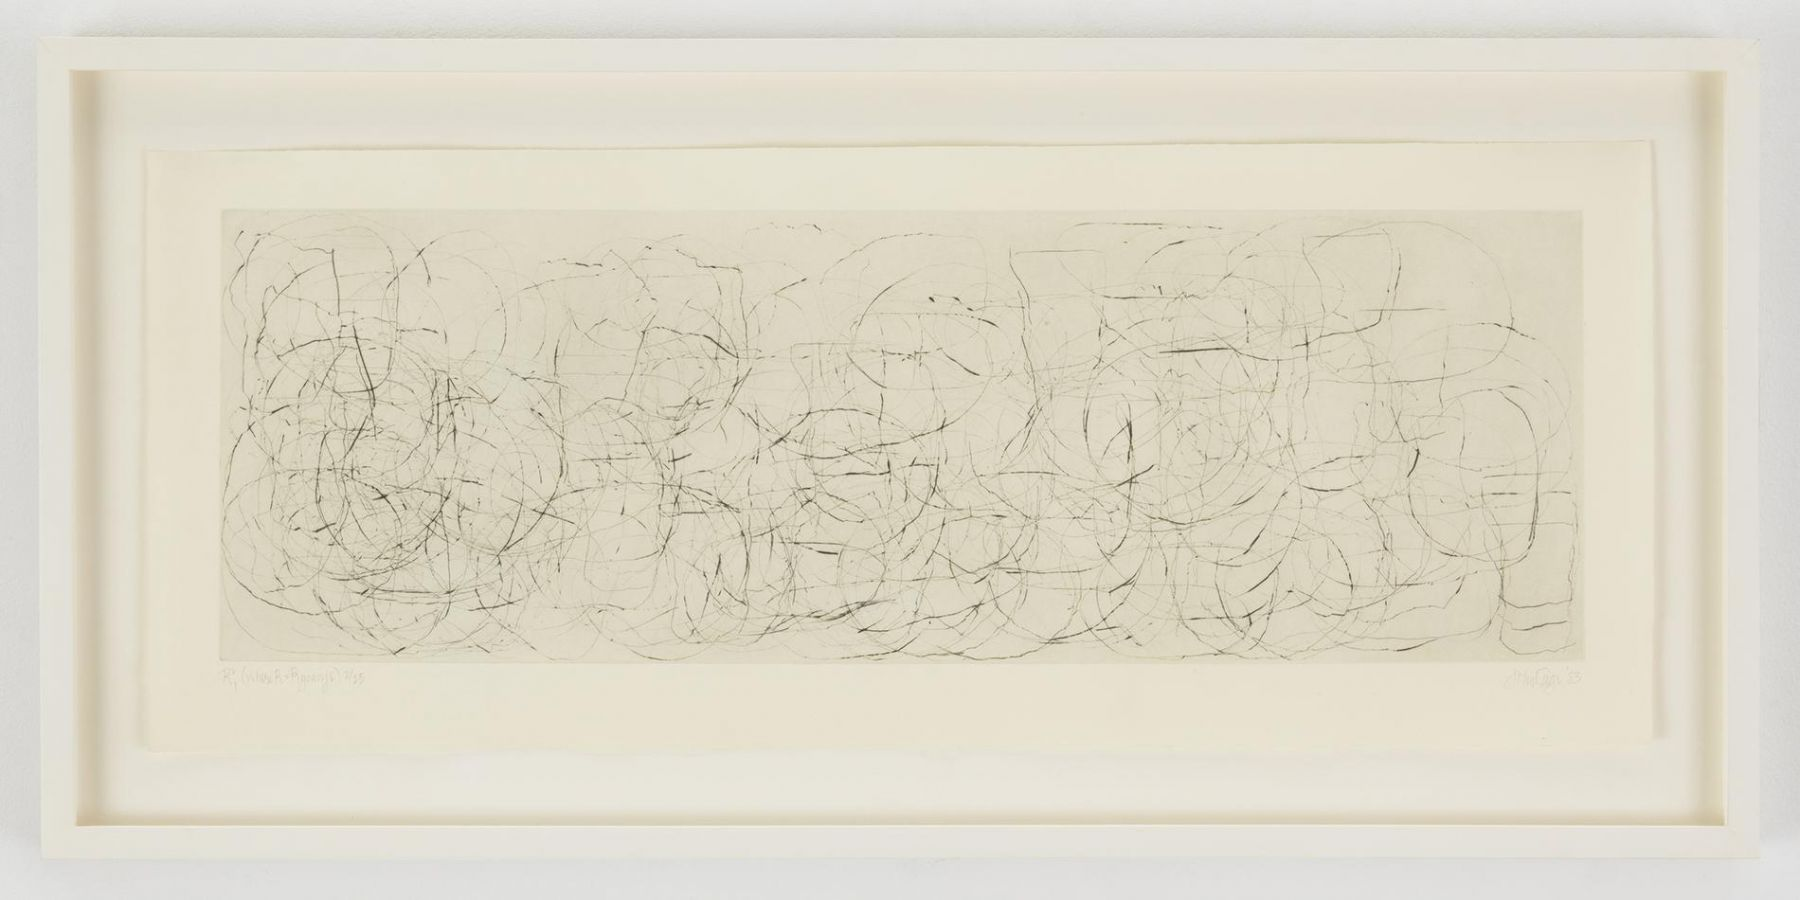 , JOHN CAGE(Where R = Ryoanji), 1983Drypoint, Set of 4Each: 9 1/4 x 23 1/4 in. (23.5 x 59 cm)Edition of 25